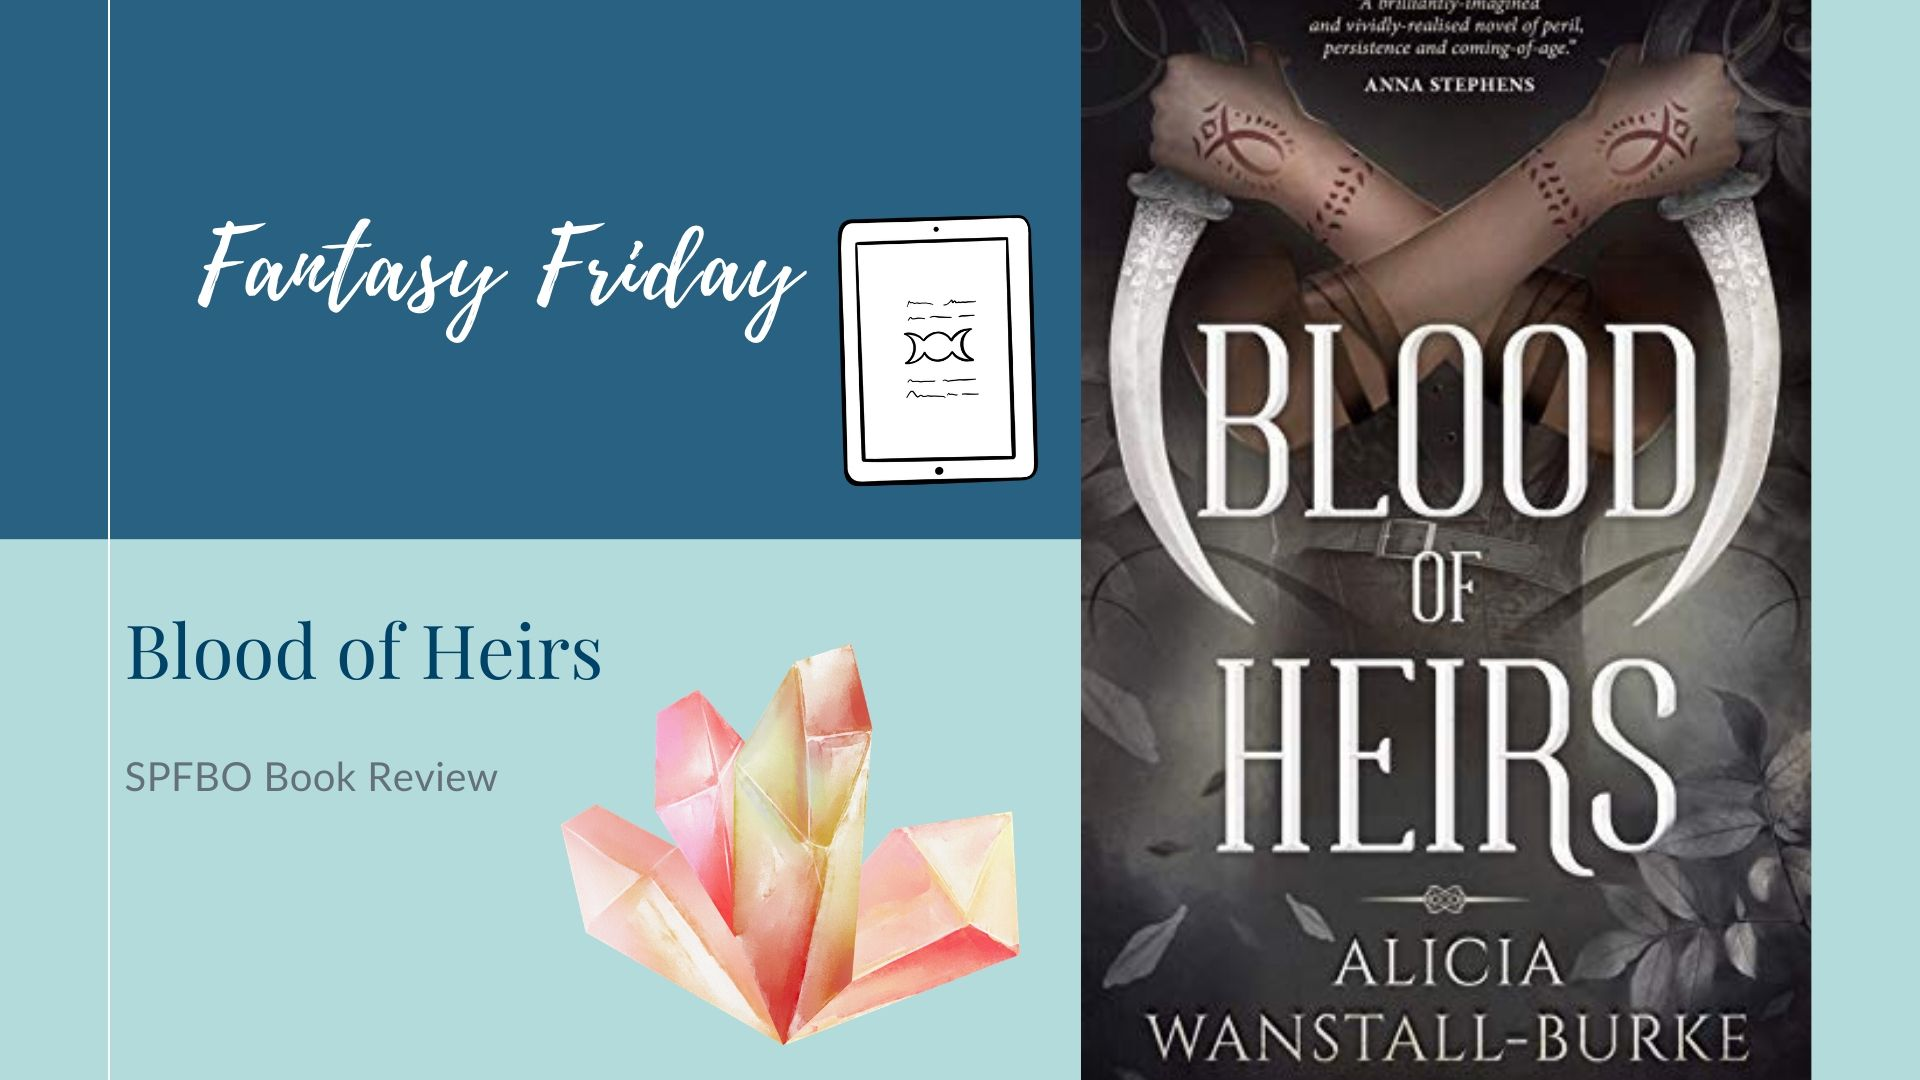 Fantasy Friday: Blood of Heirs by Alicia Wanstall-Burke